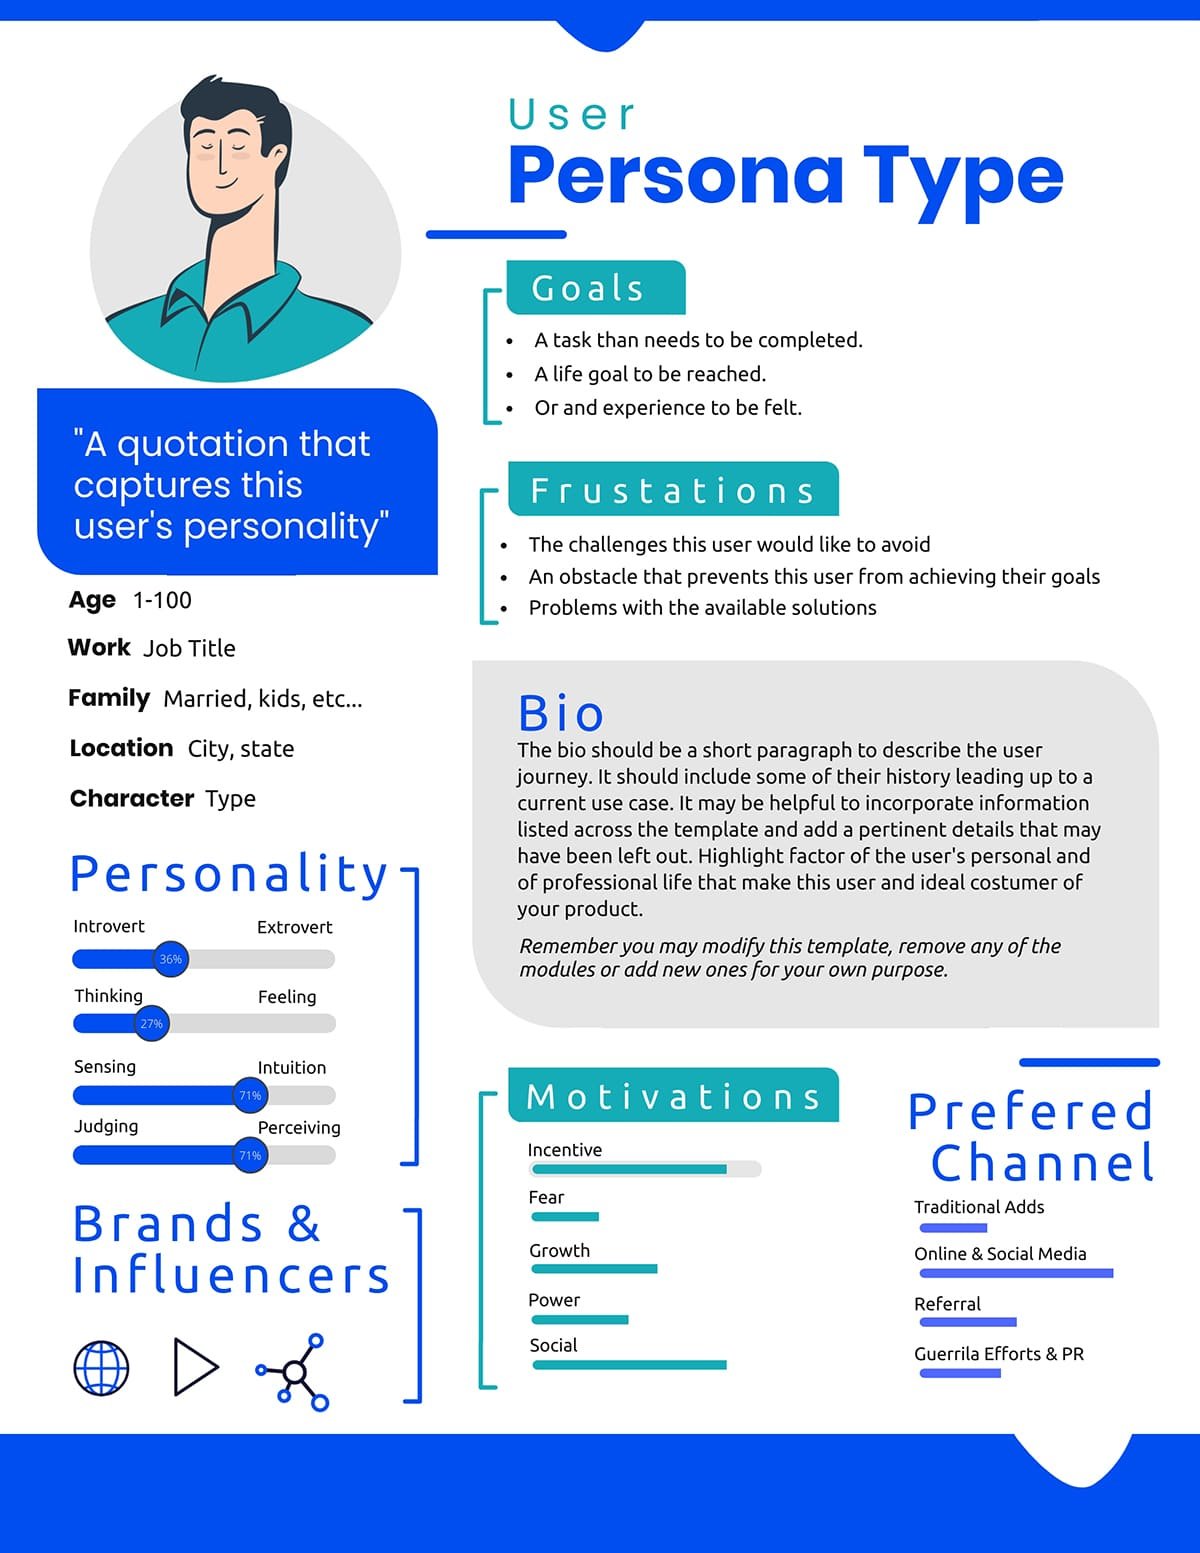 A user persona worksheet available to customize in Visme.